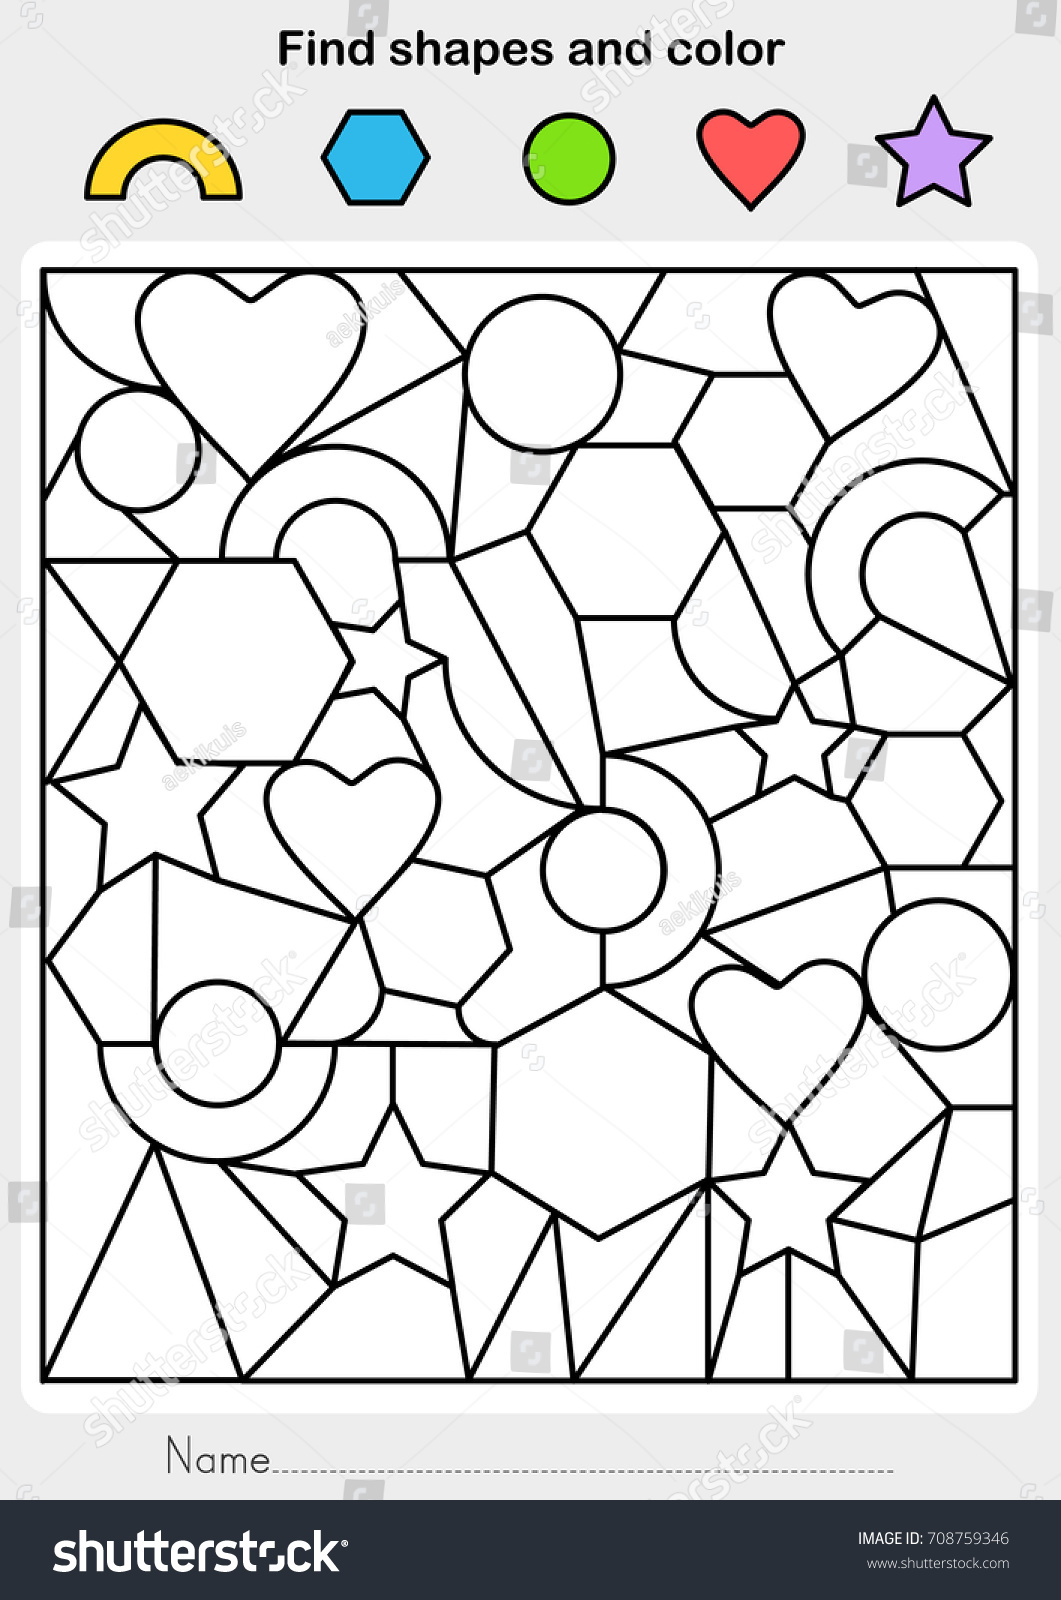 43 Worksheets For Kindergarten Math Shapes